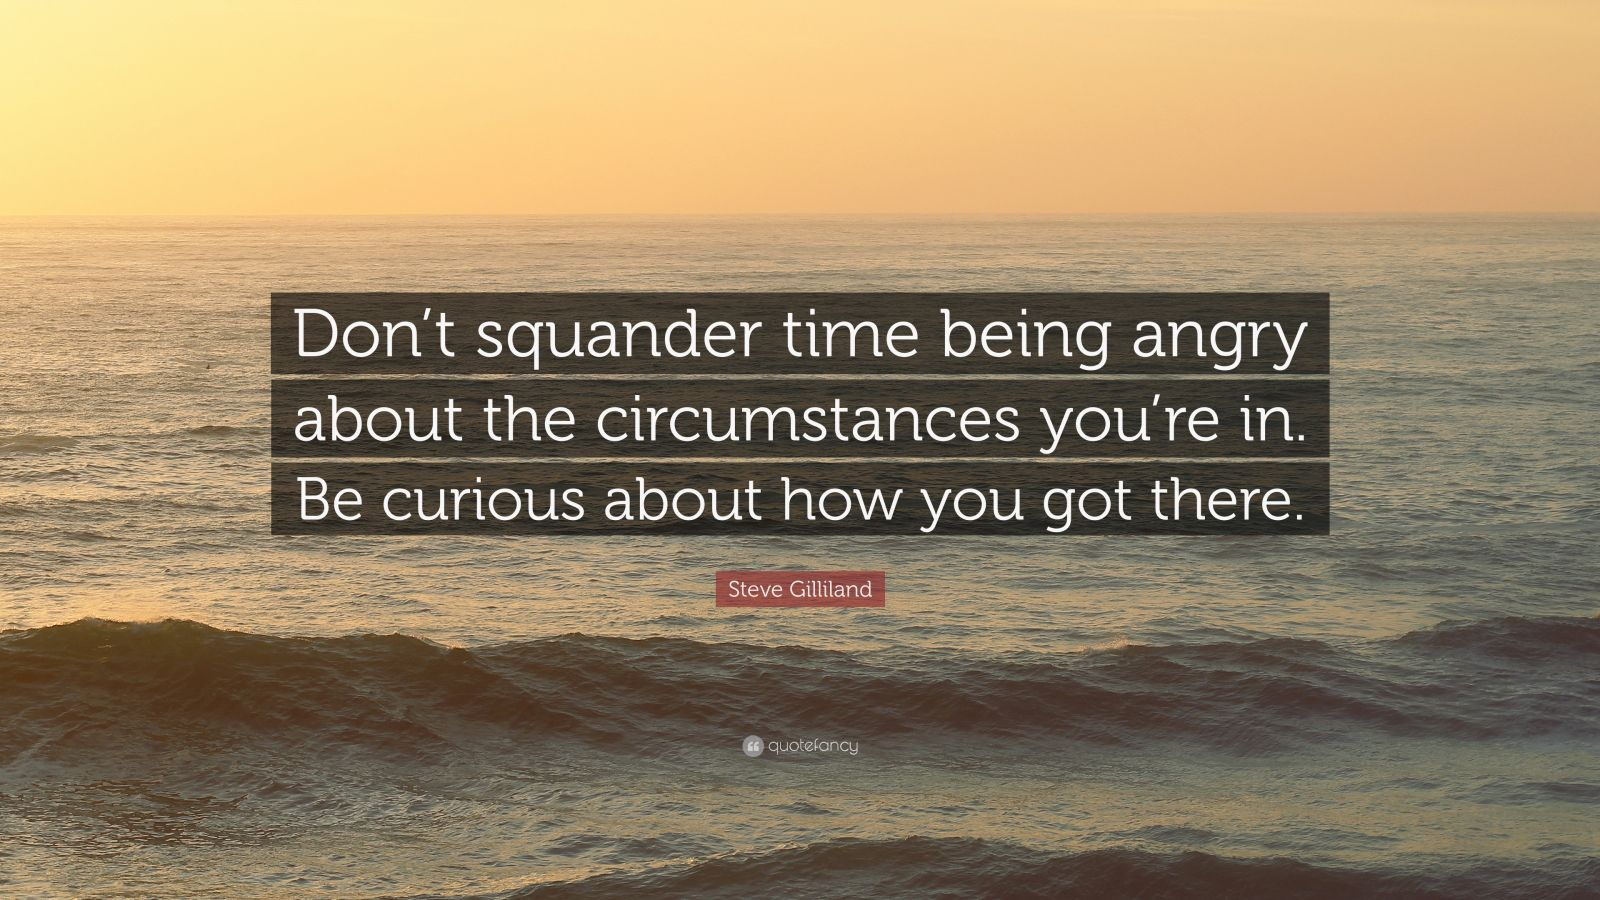 """Steve Gilliland Quote: """"Don't squander time being angry about the circumstances you're in. Be curious about how you got there."""""""